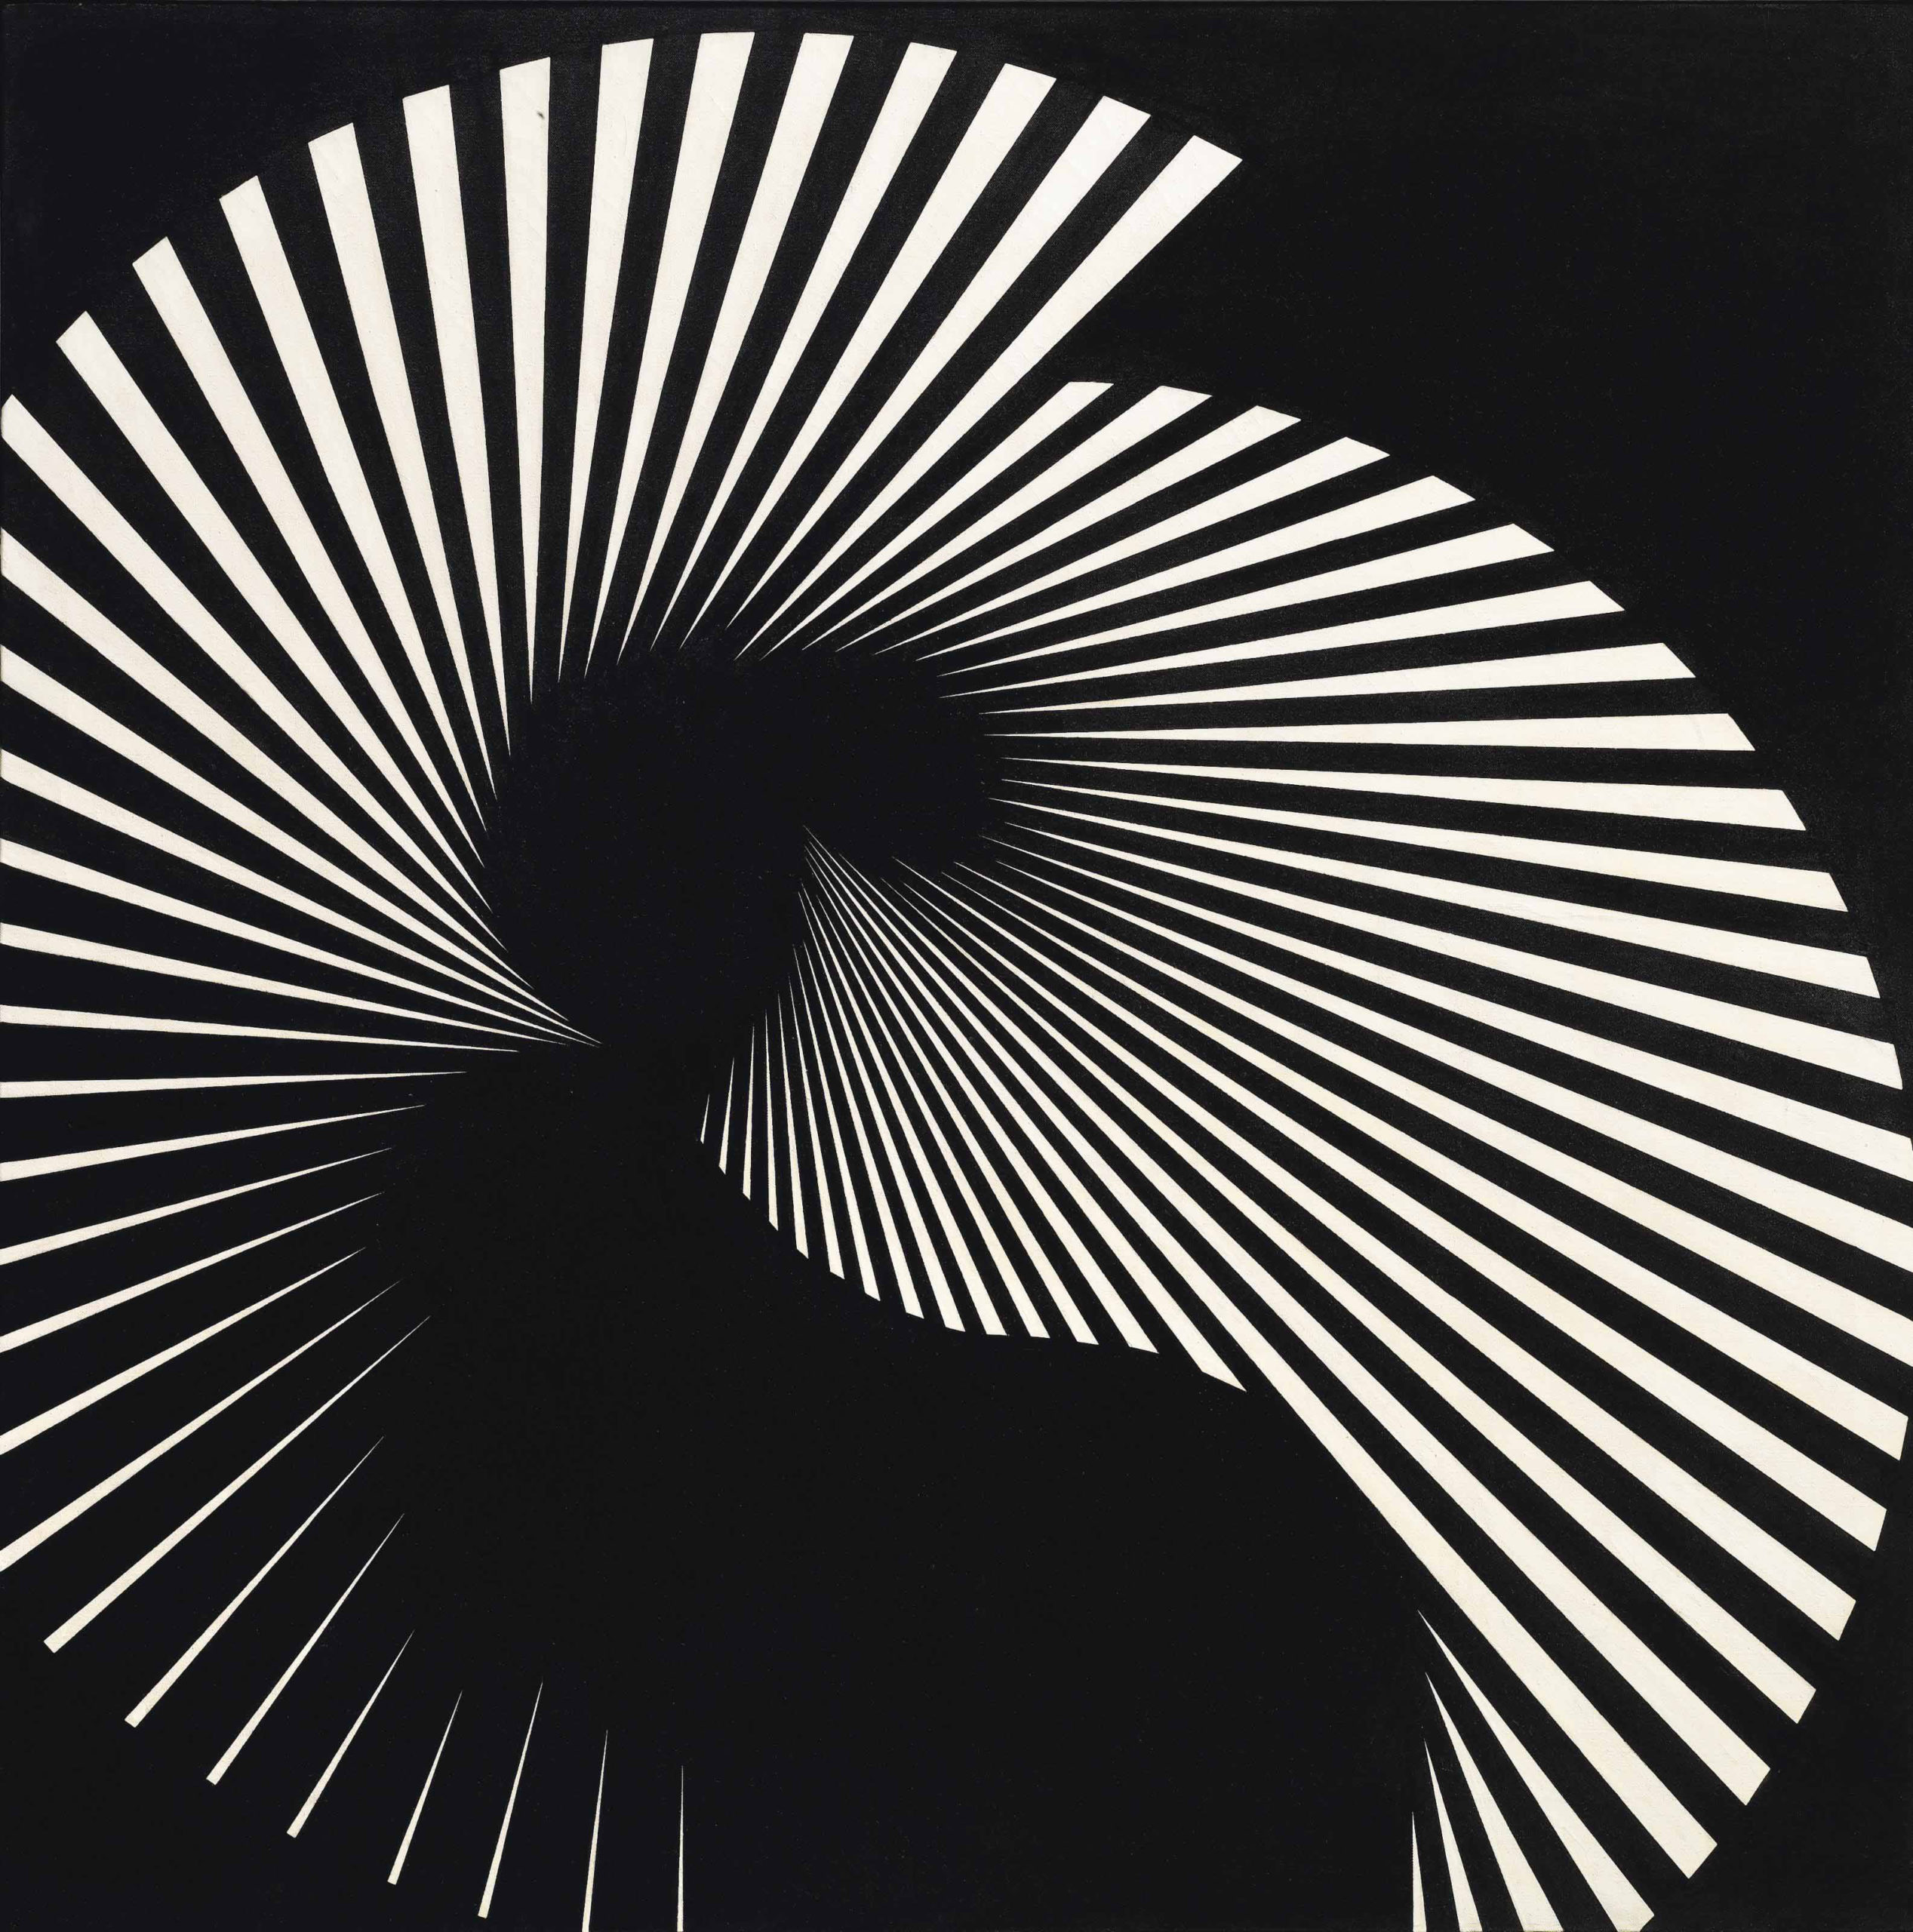 Franco Grignani, Floating tension n° 18, 1965